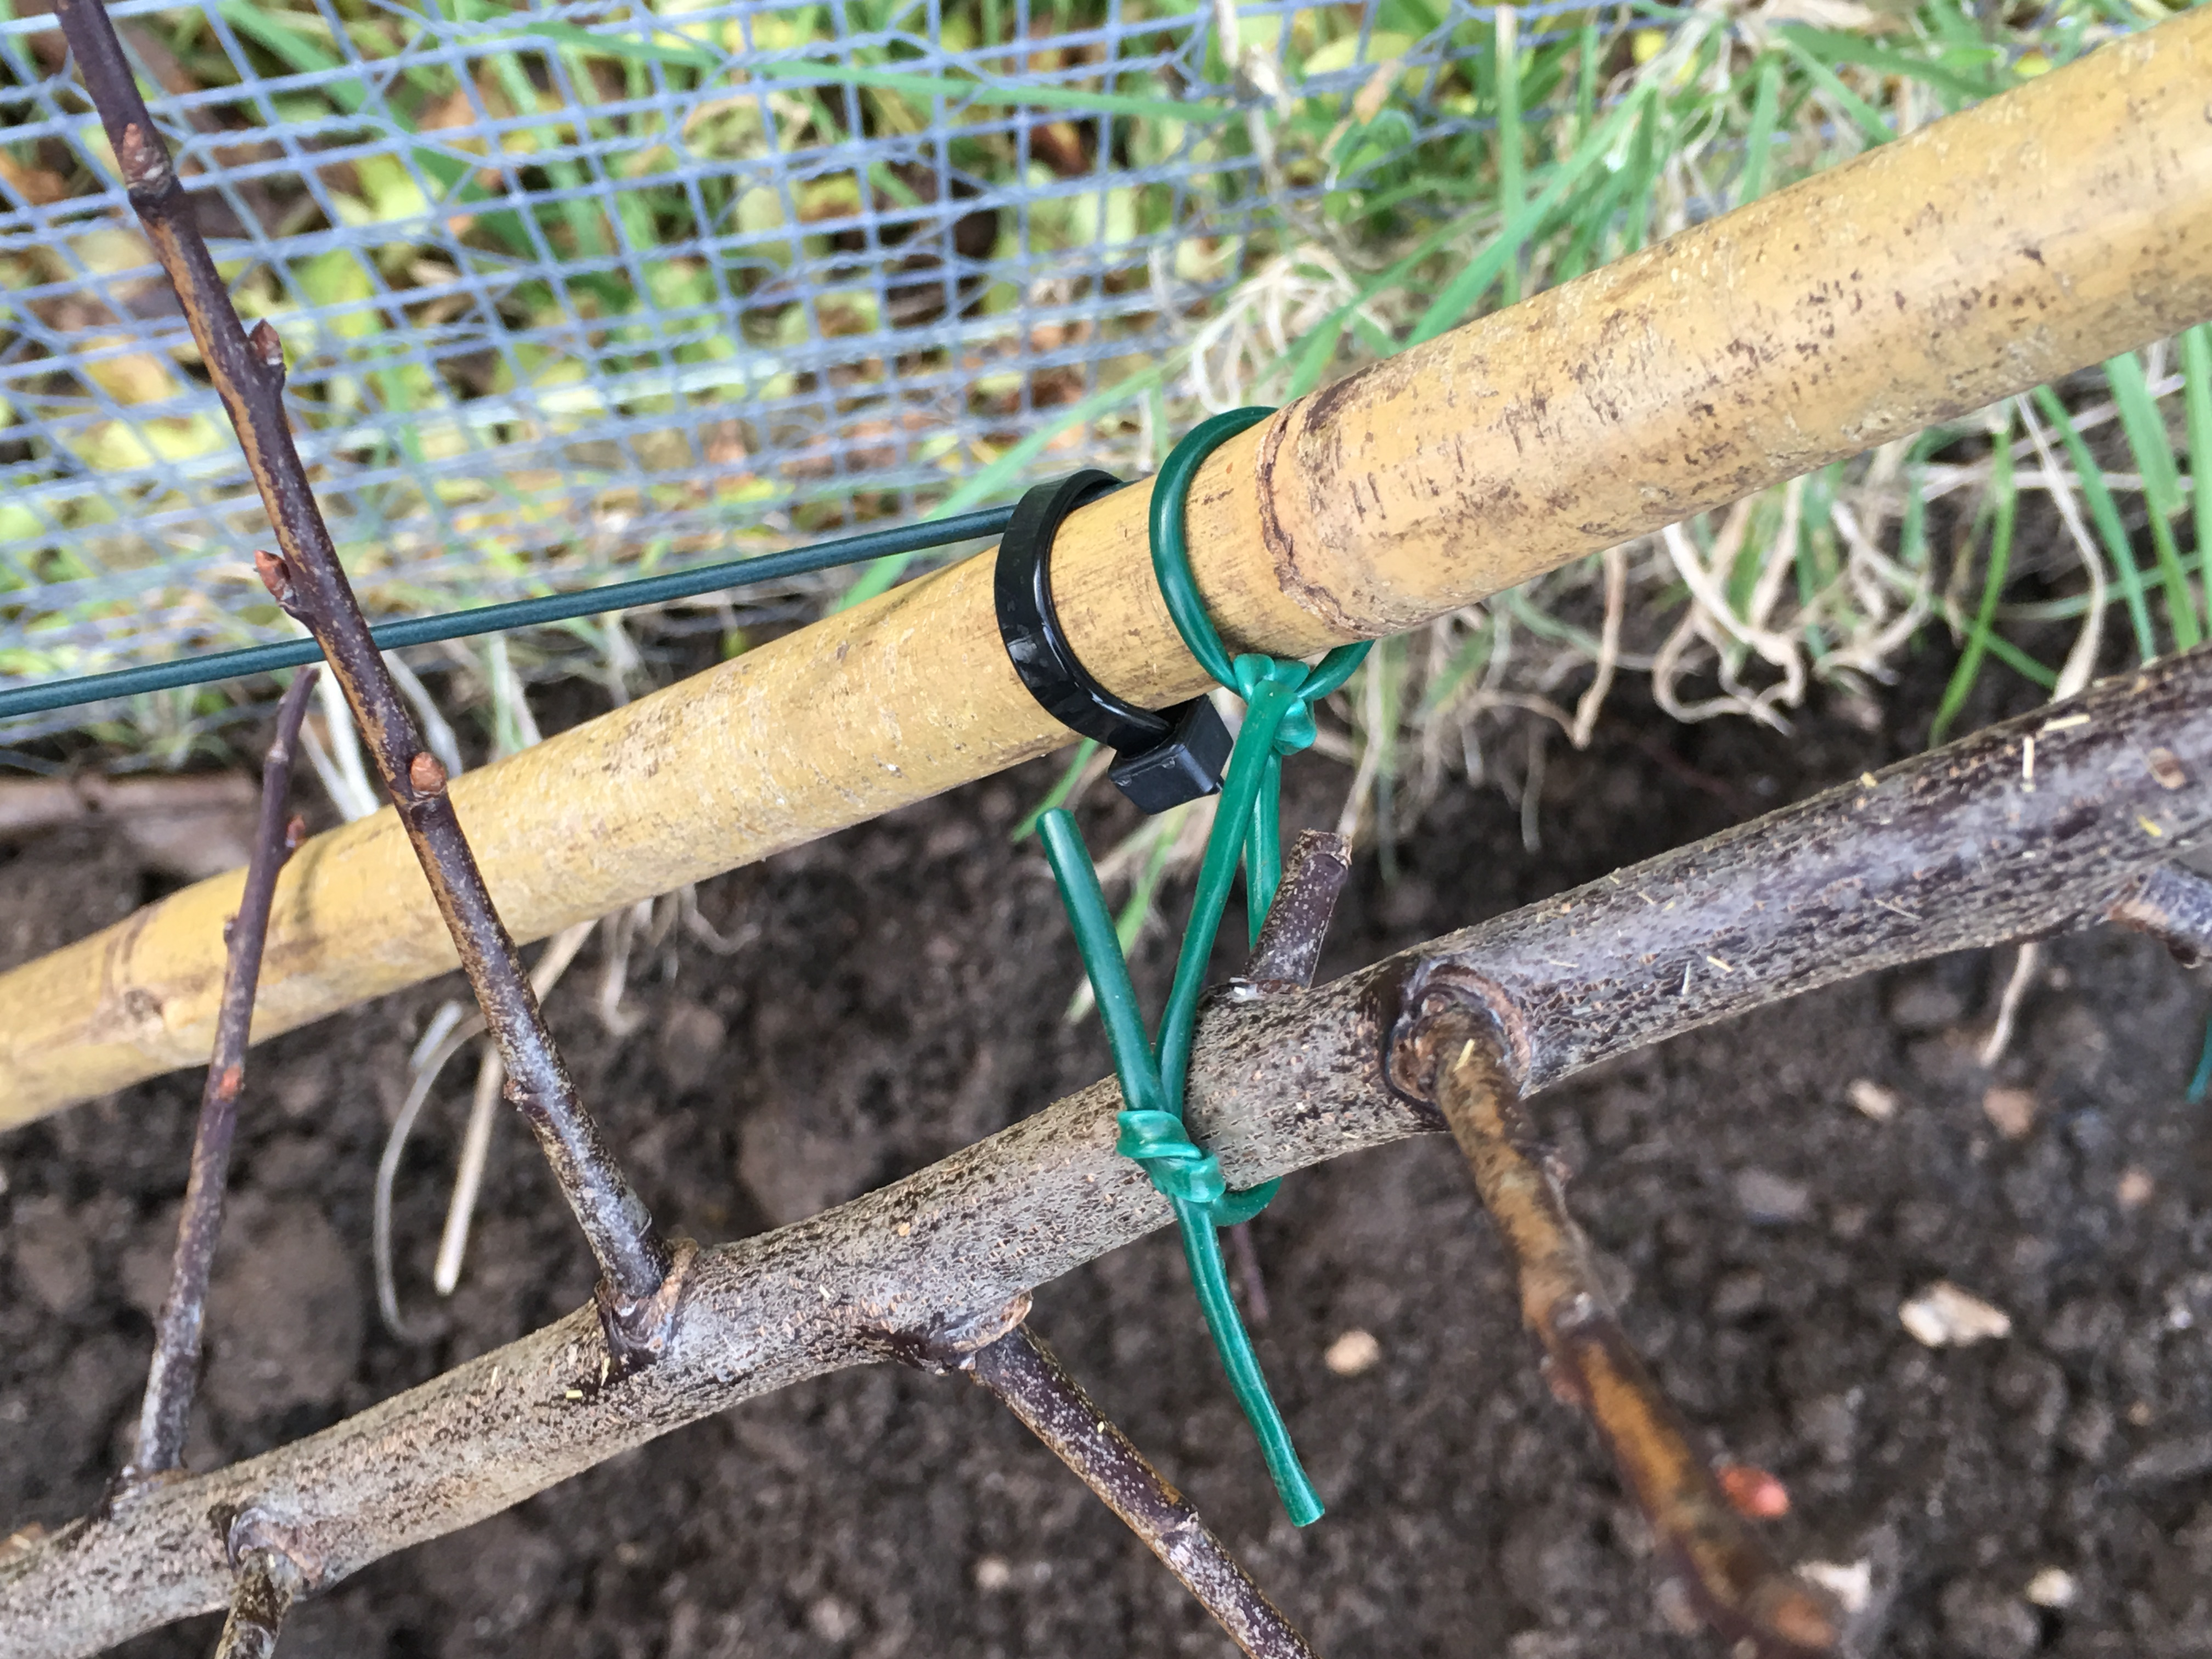 Stems attached to the canes with flexible plastic ties